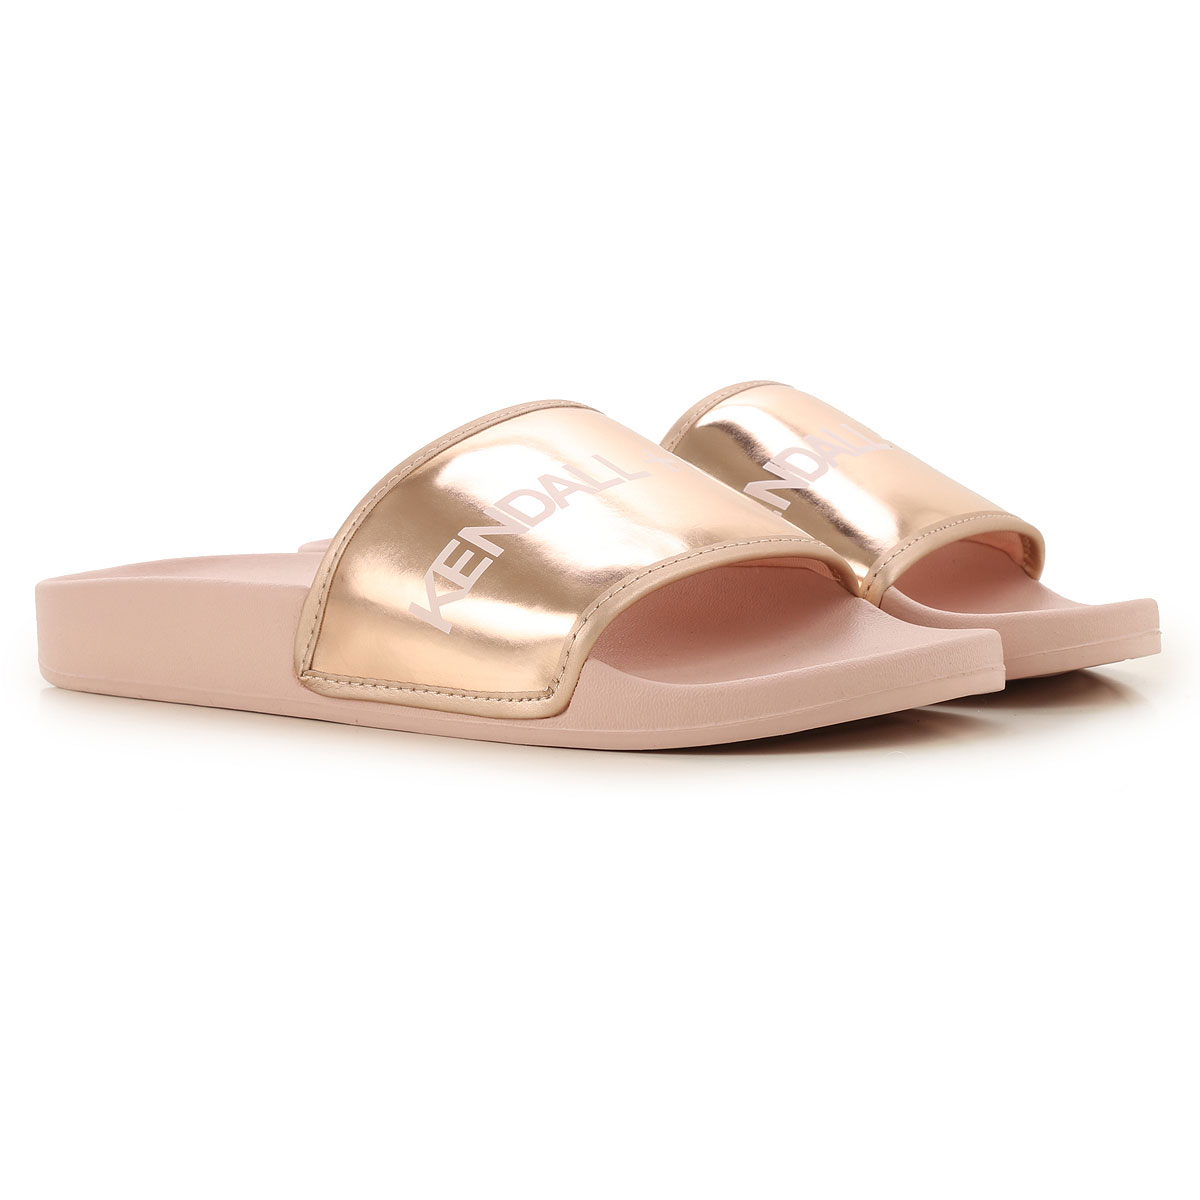 Kendall Kylie Sandals for Women On Sale in Outlet, Pink, Leather, 2019, 5 6